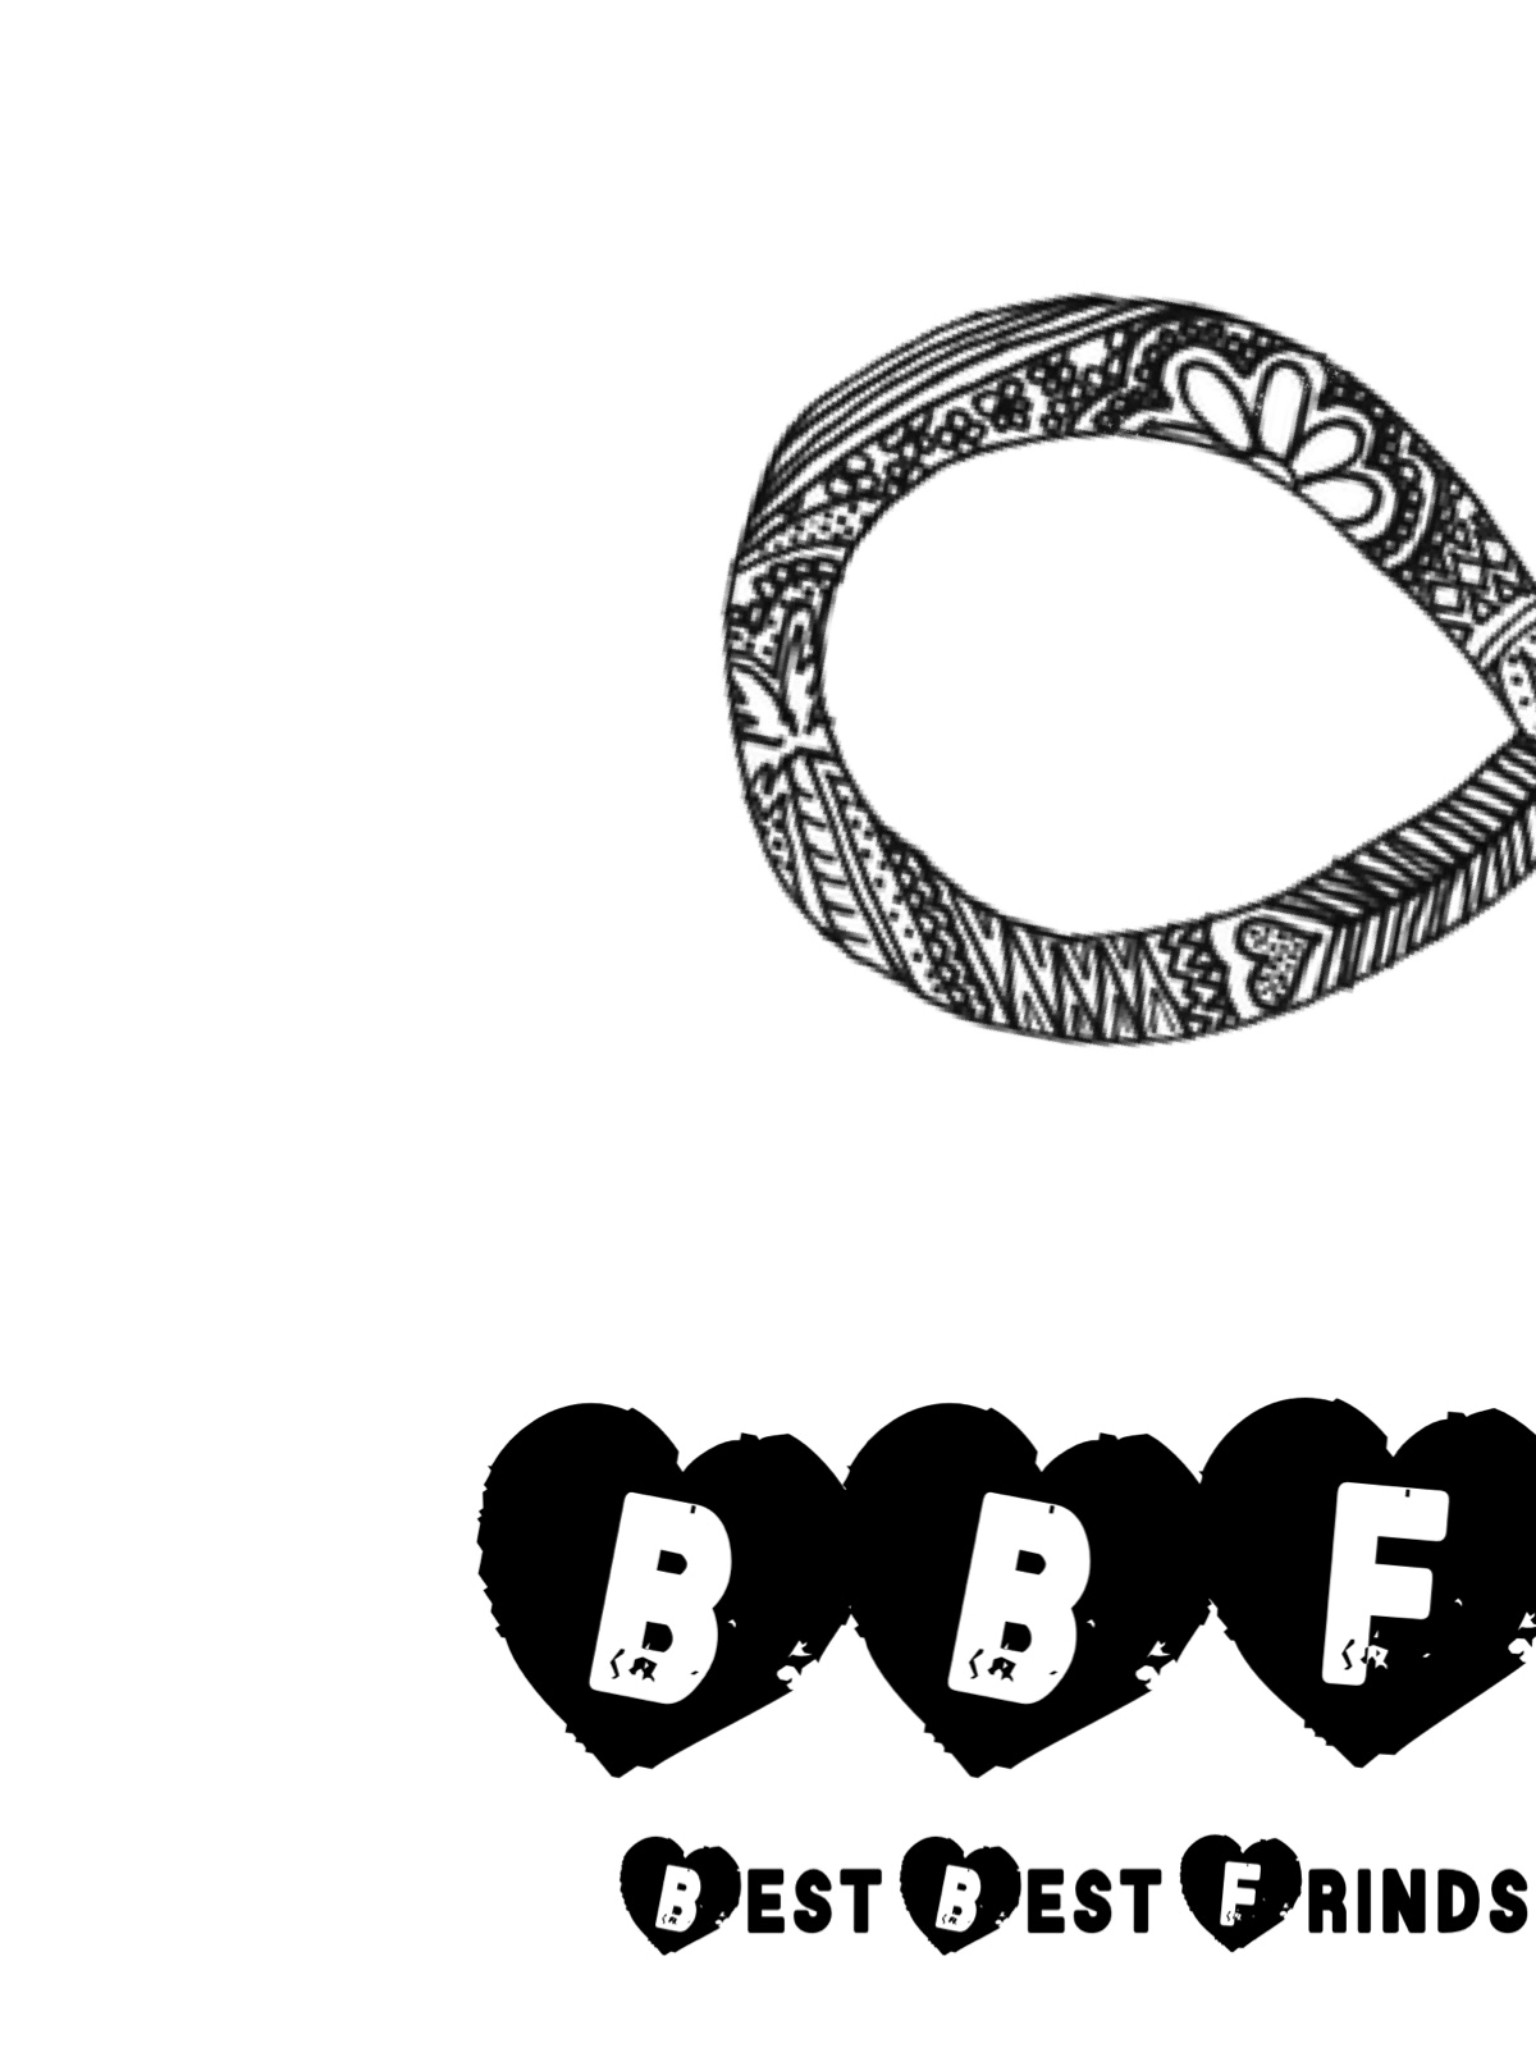 Bff Wallpapers Wallpapertag